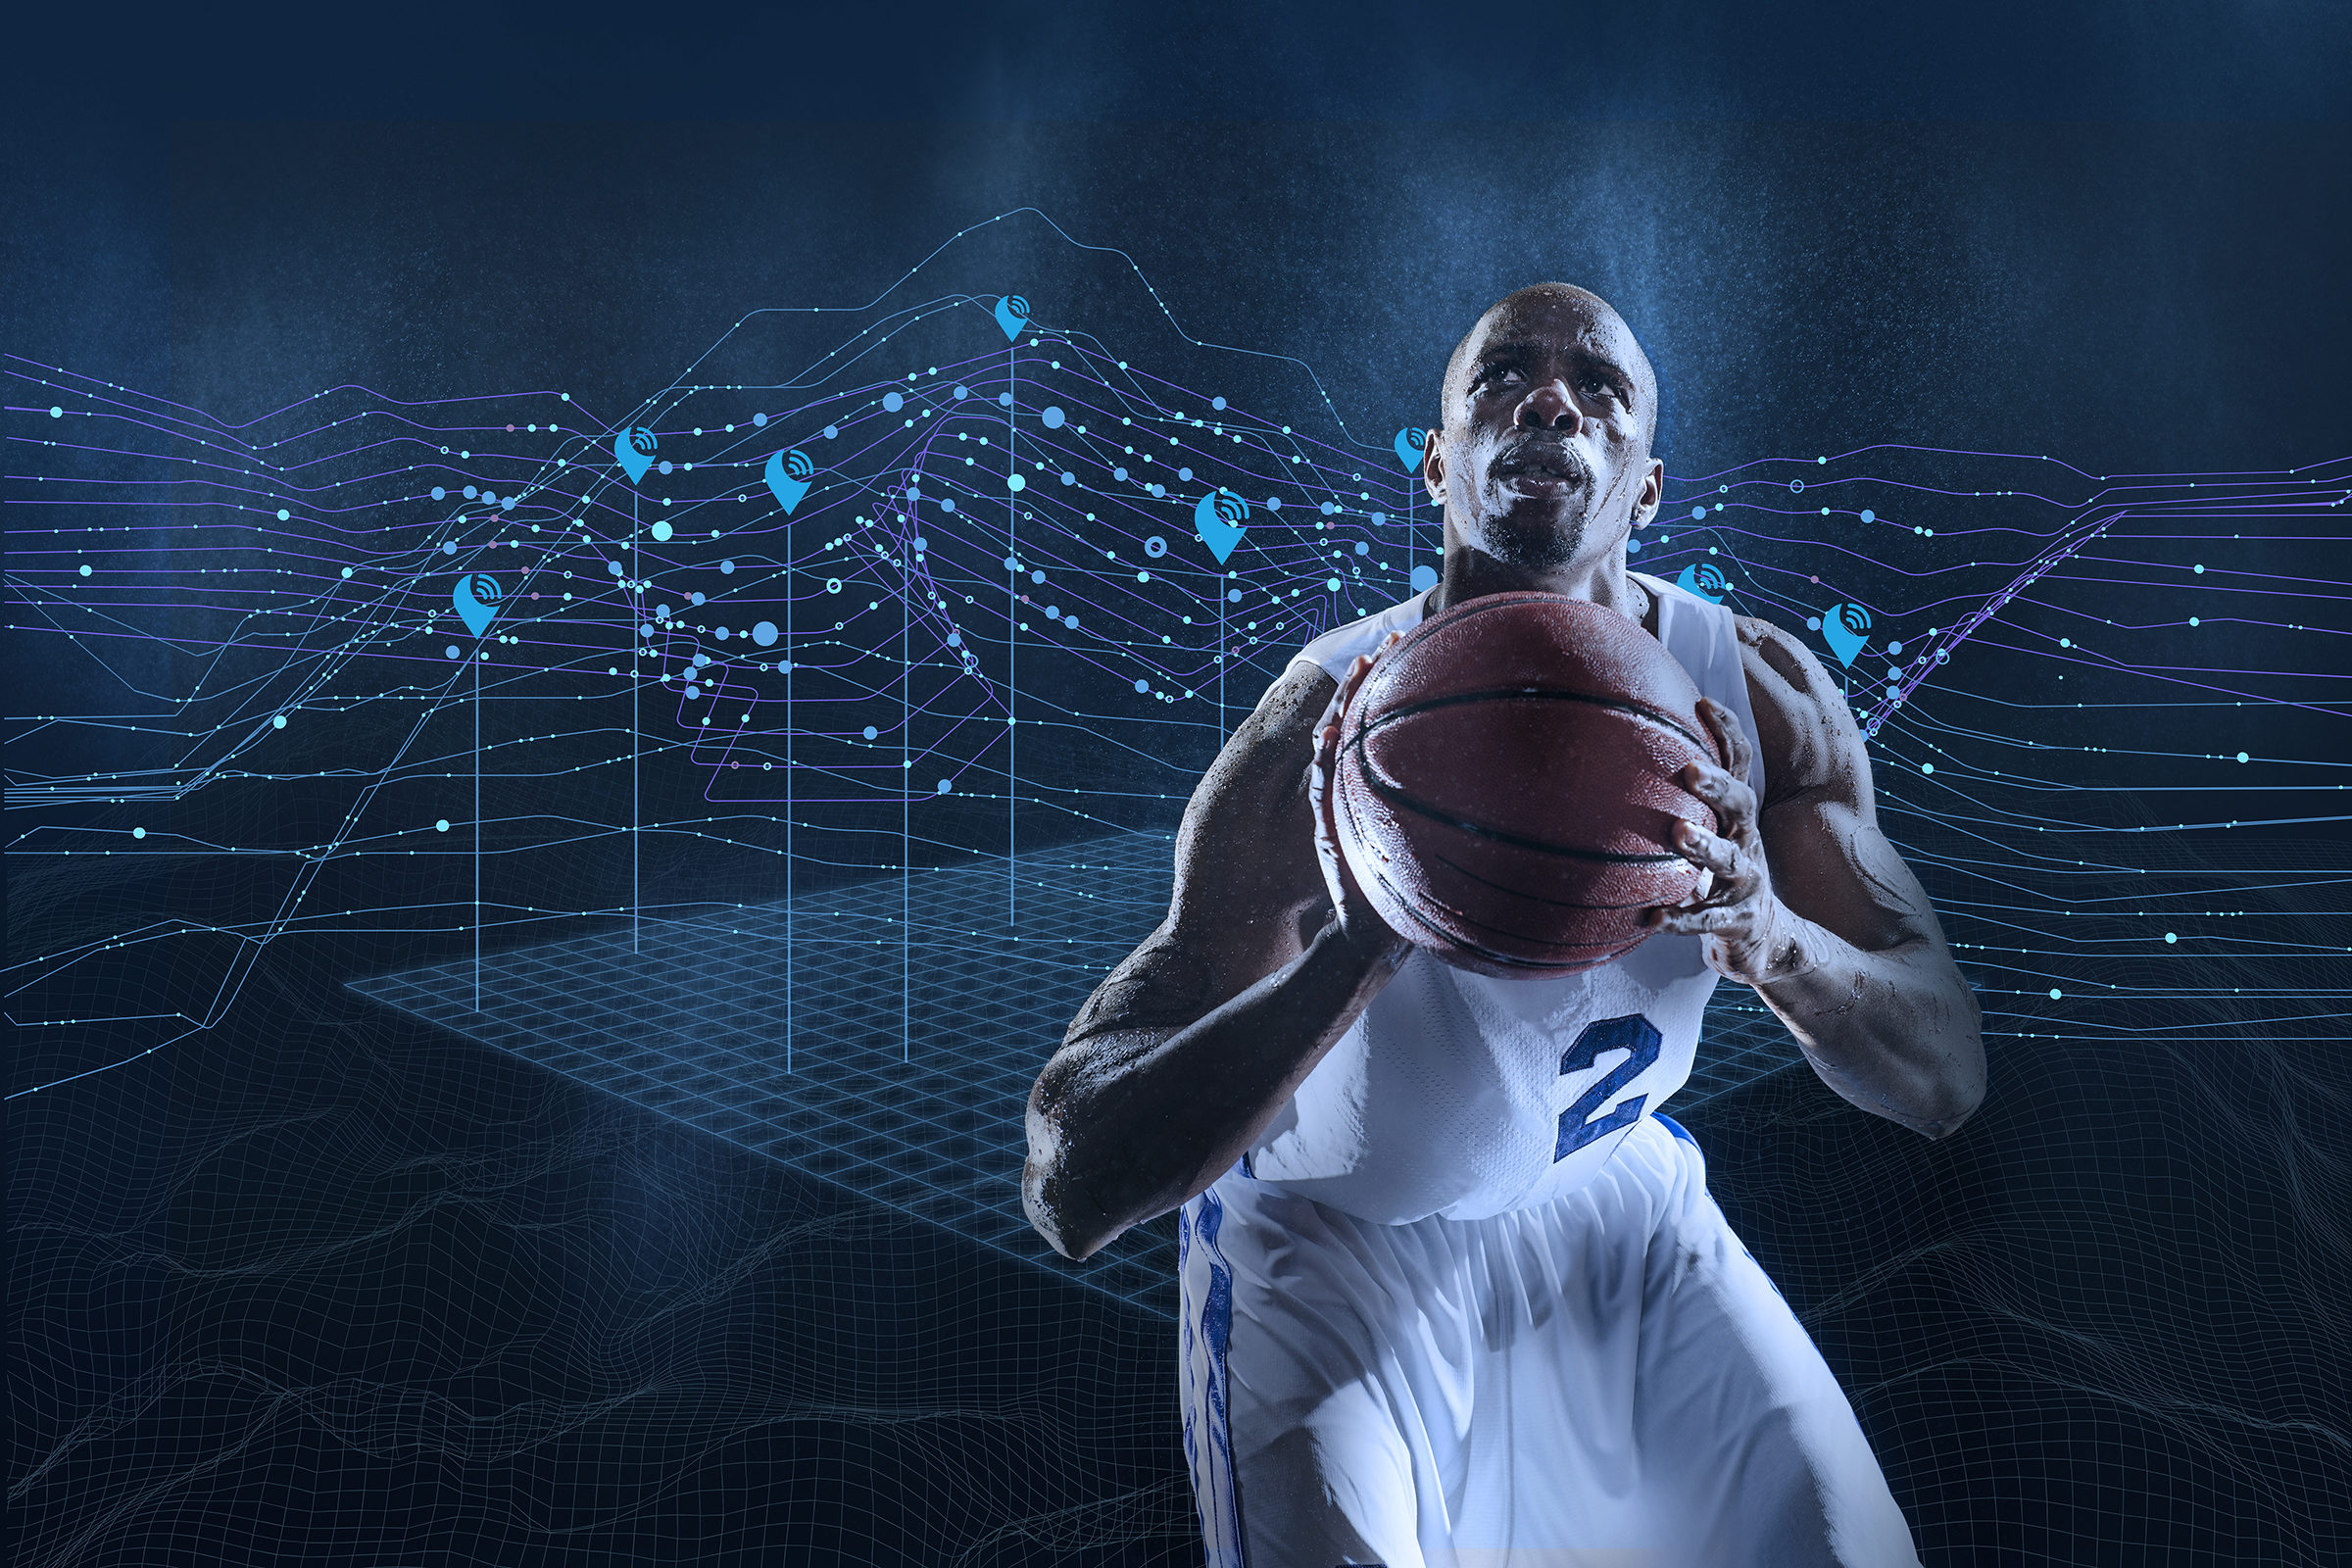 KINEXON Sports Analytics Basketball Player